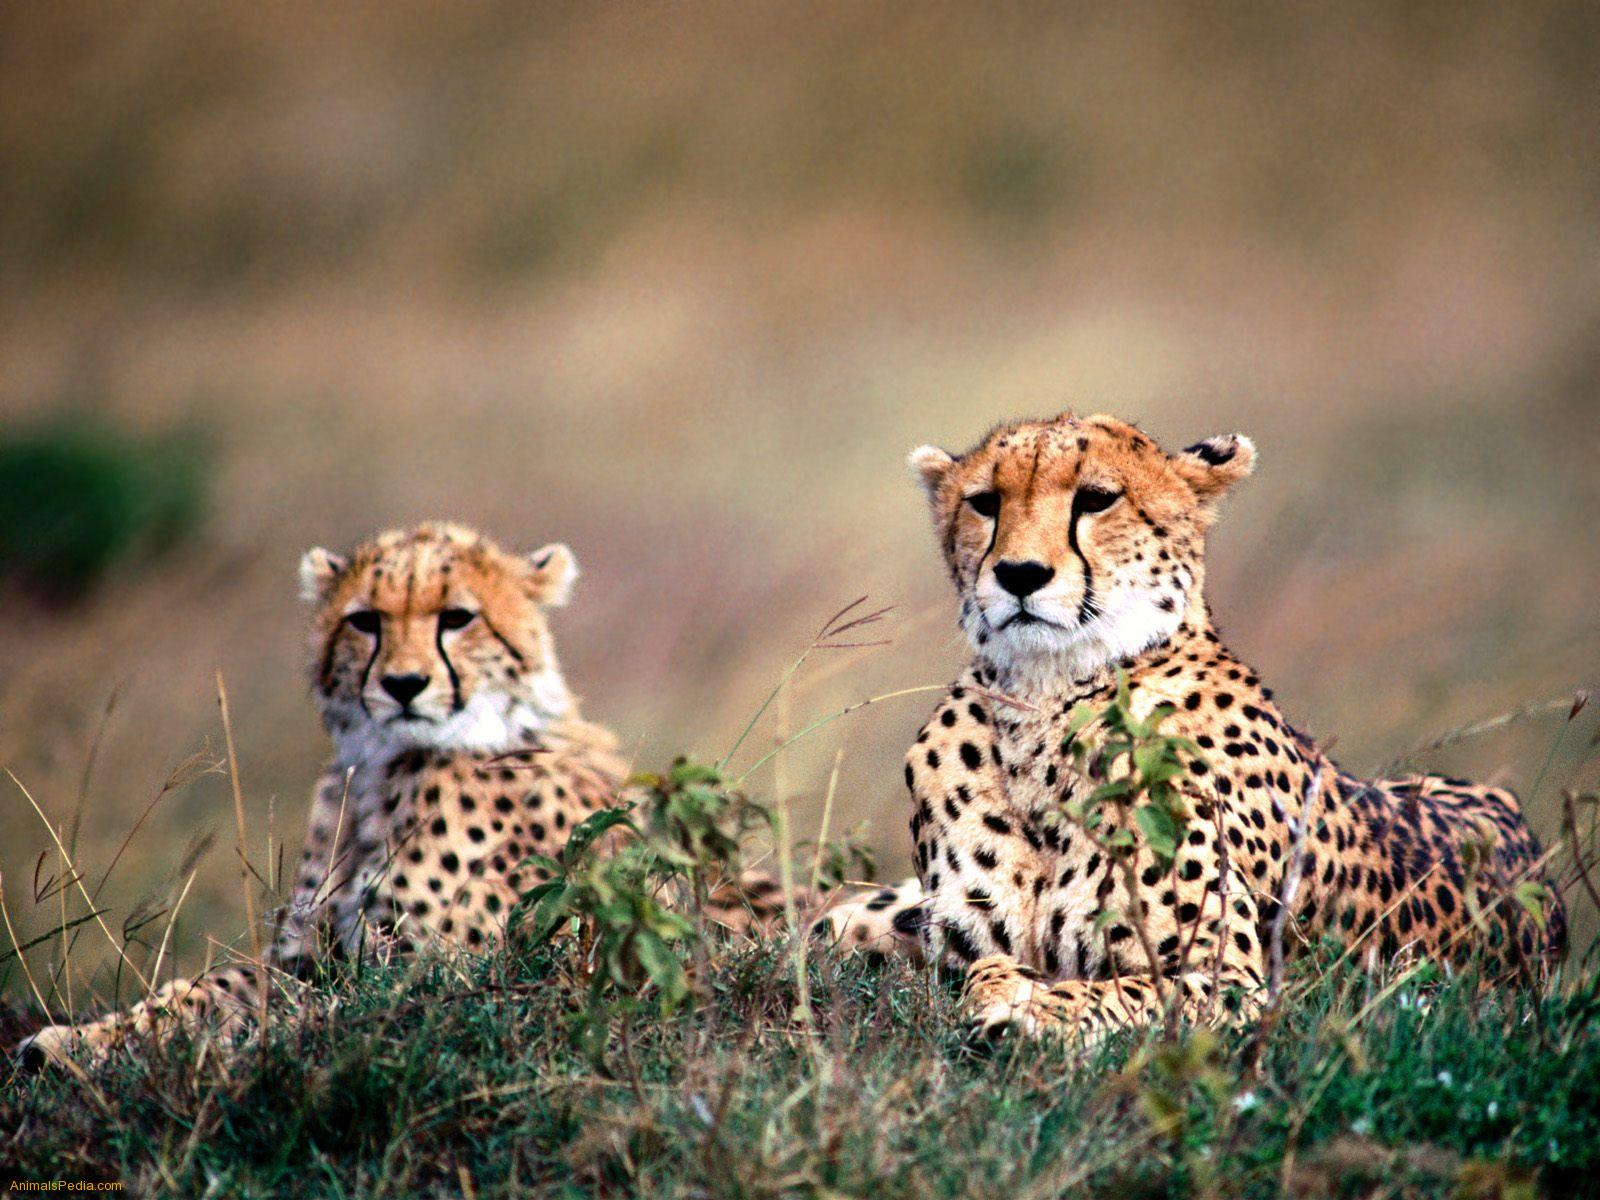 Cheetahs in Kidepo valley national park